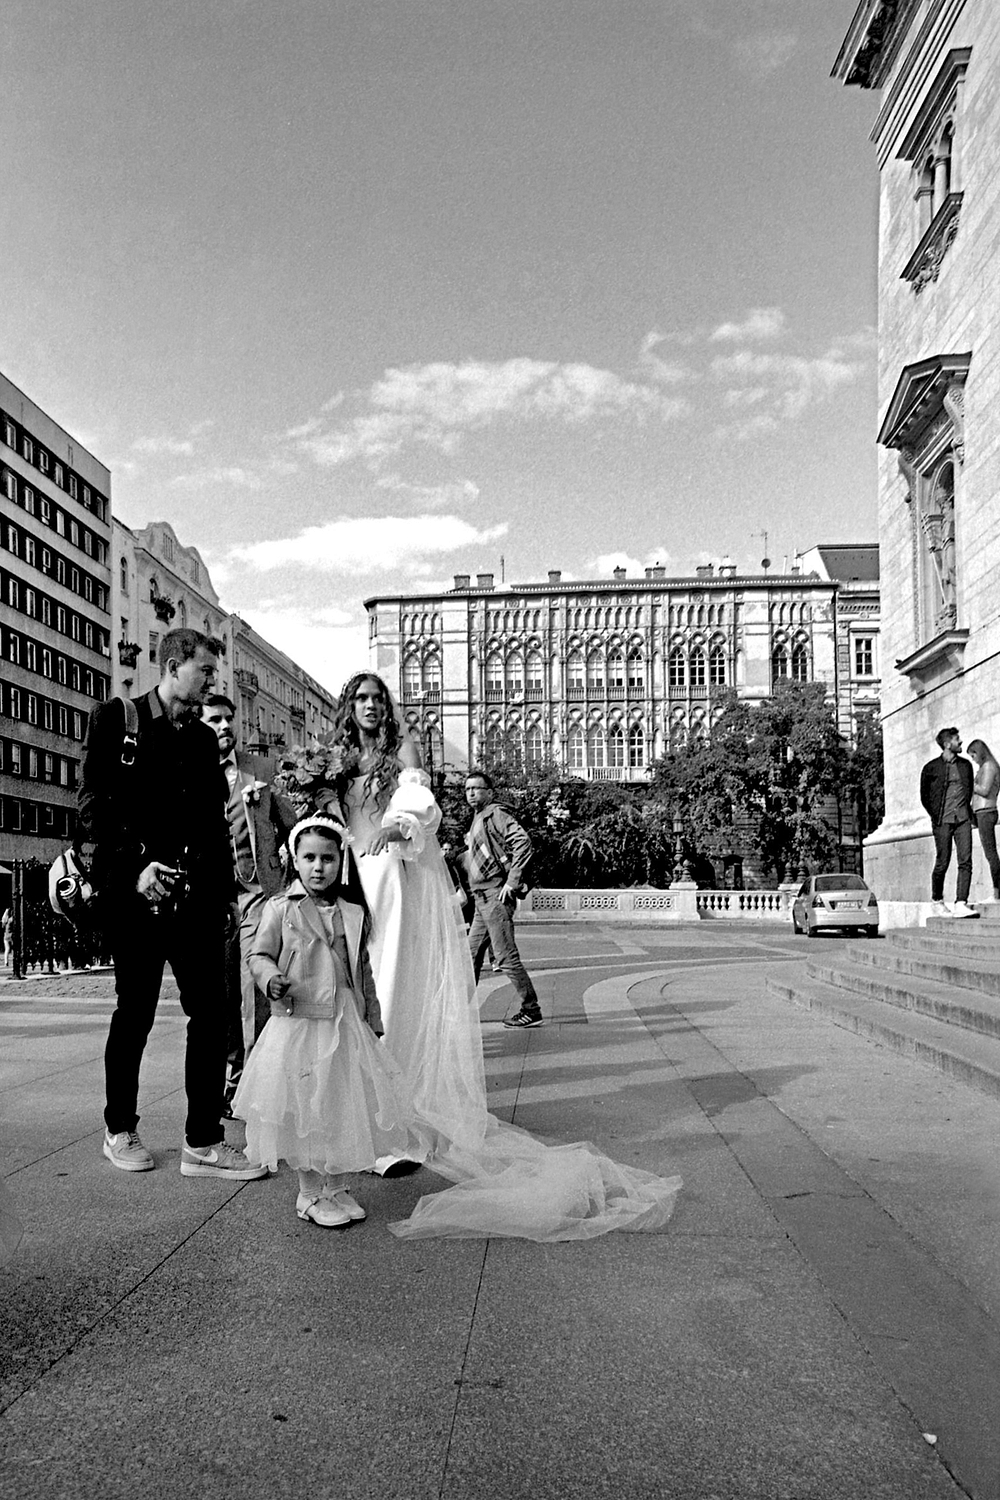 Flower Girl with the Bride, Budapest 2018   Edition 1 of 2